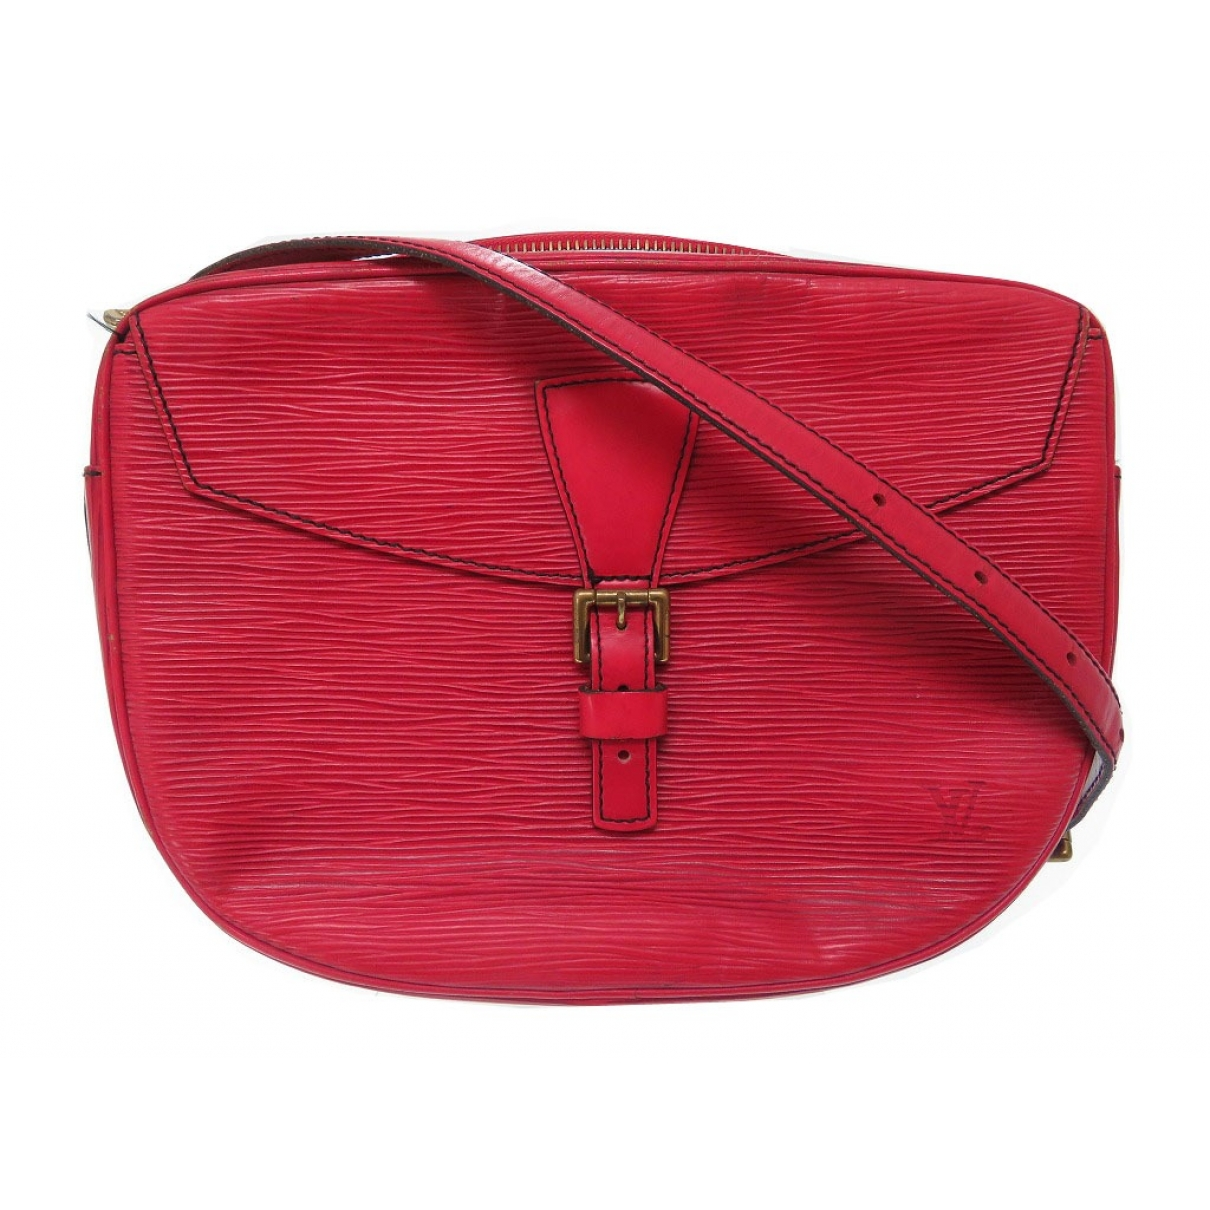 Louis Vuitton Jeune fille  Red Leather handbag for Women \N